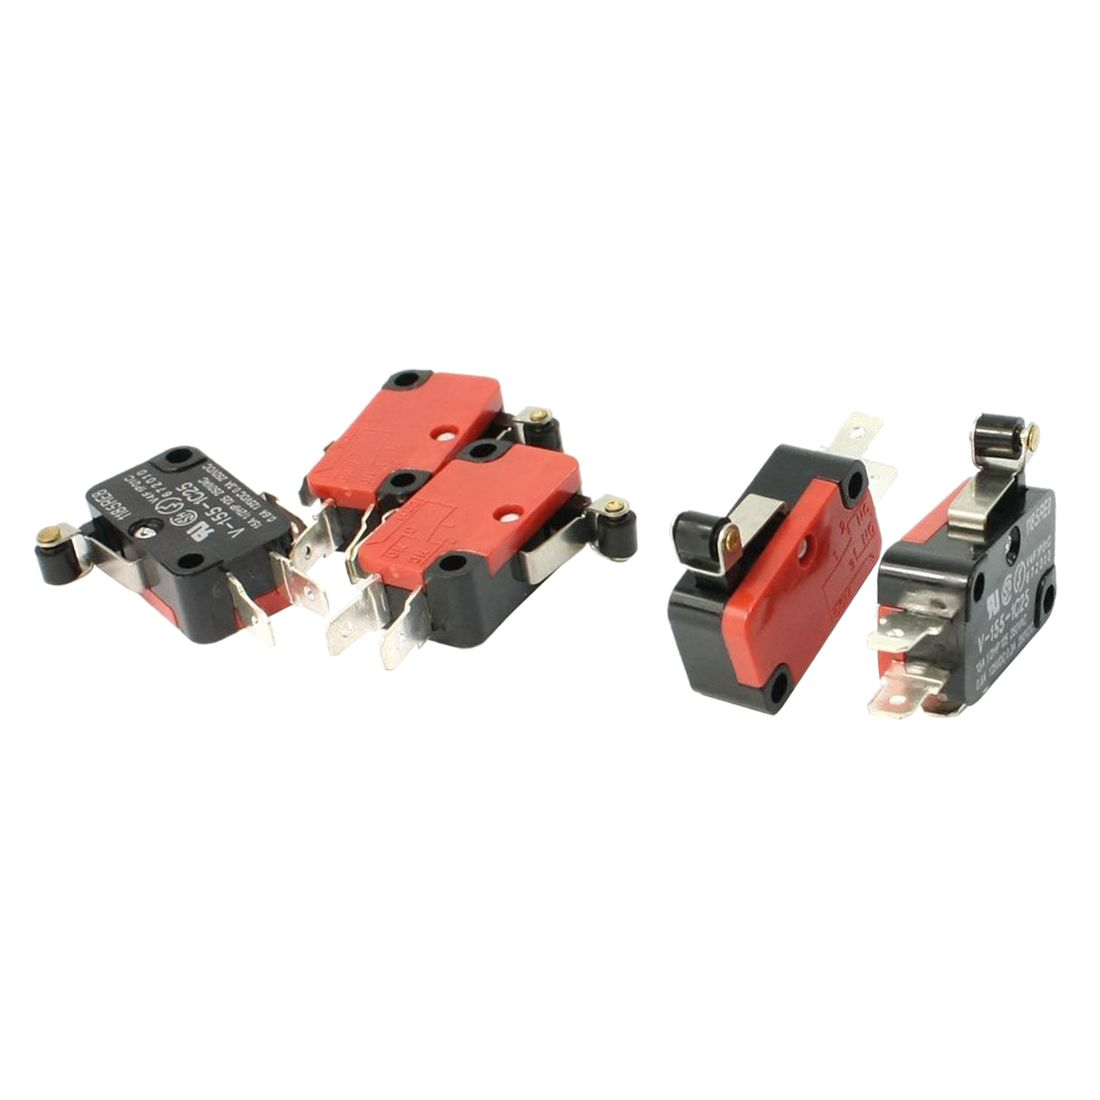 5pcs Spdt No Nc V 155 1c25 Short Hinge Roller Lever Control Limit Micro Switch With Cheap Buy Quality Directly From China Suppliers